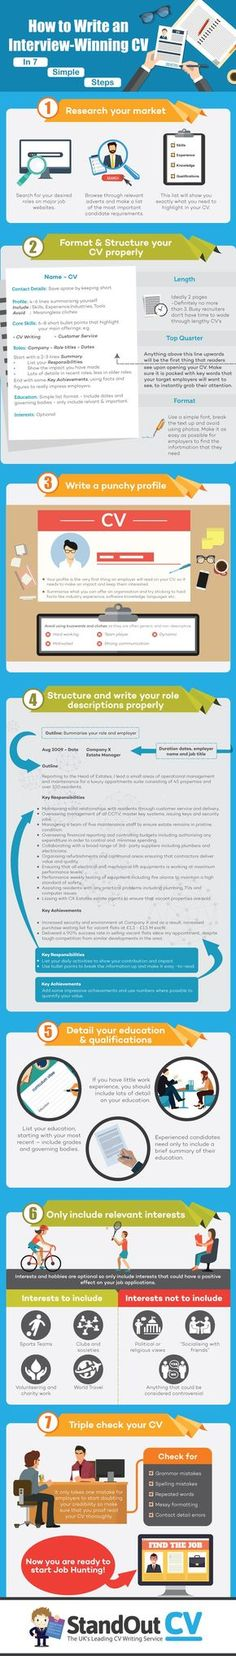 6 CV Writing Tips For Graduates #Infographic Infographic, Craft - how to write cv resume